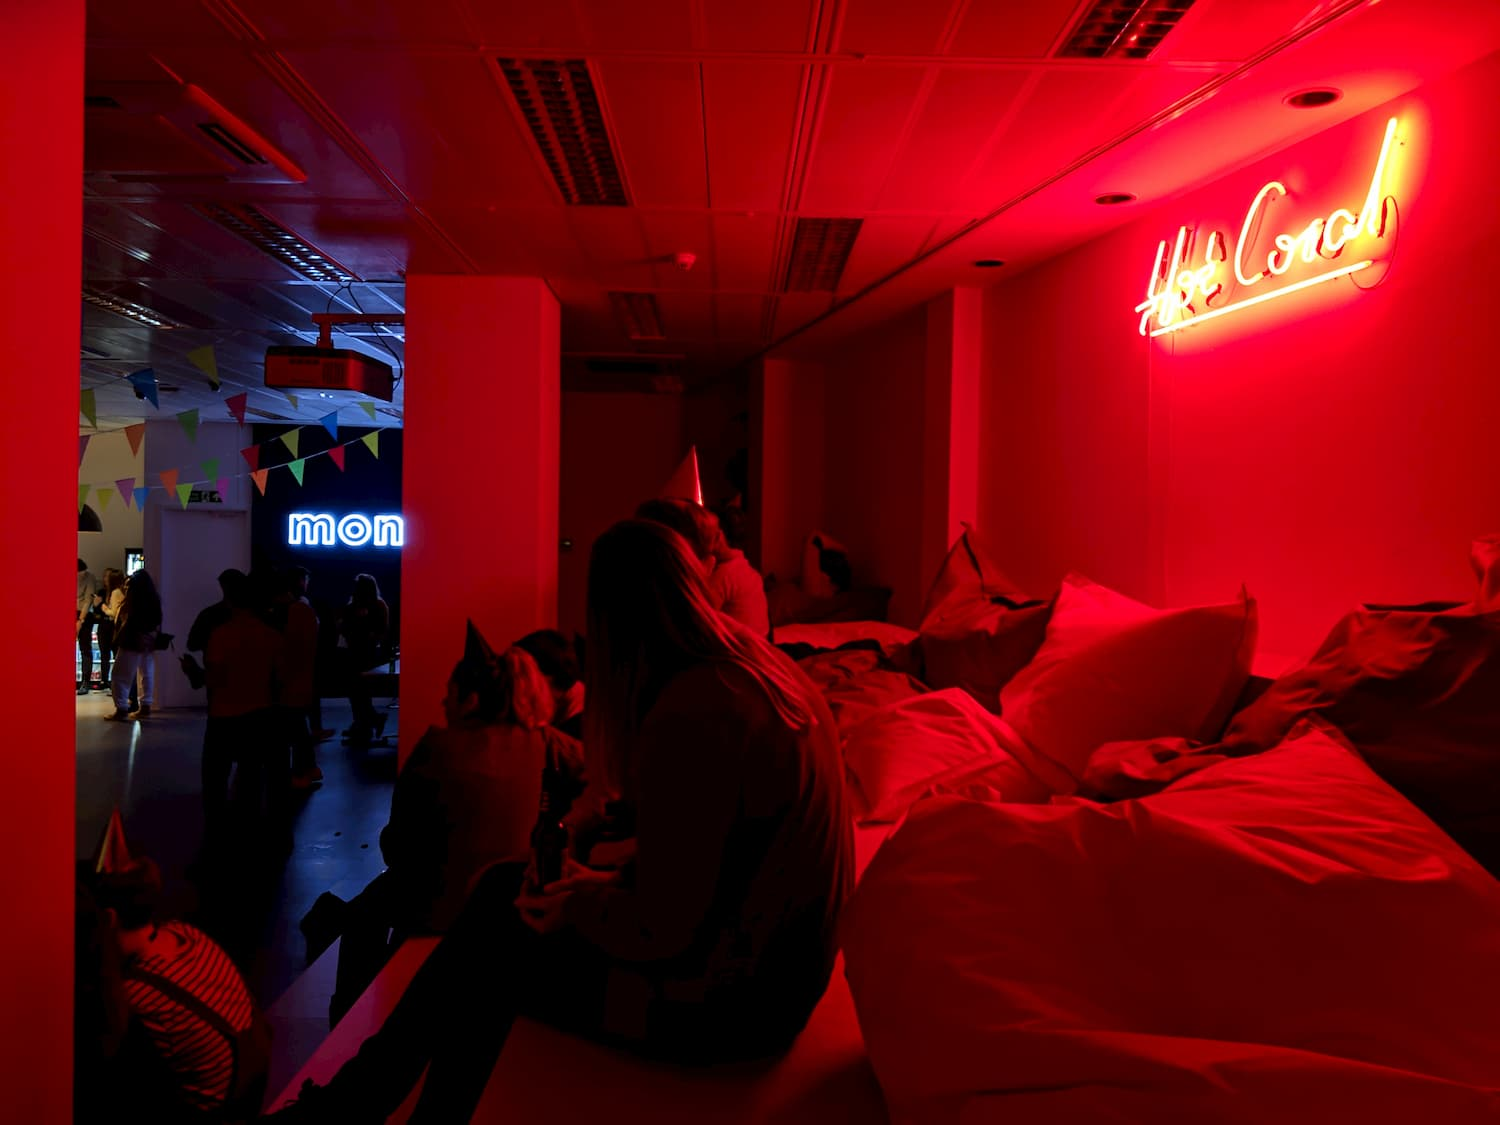 On the right wall a neon sign reads 'Hot Coral' and is projecting a pink glow onto people sat wearing party hats